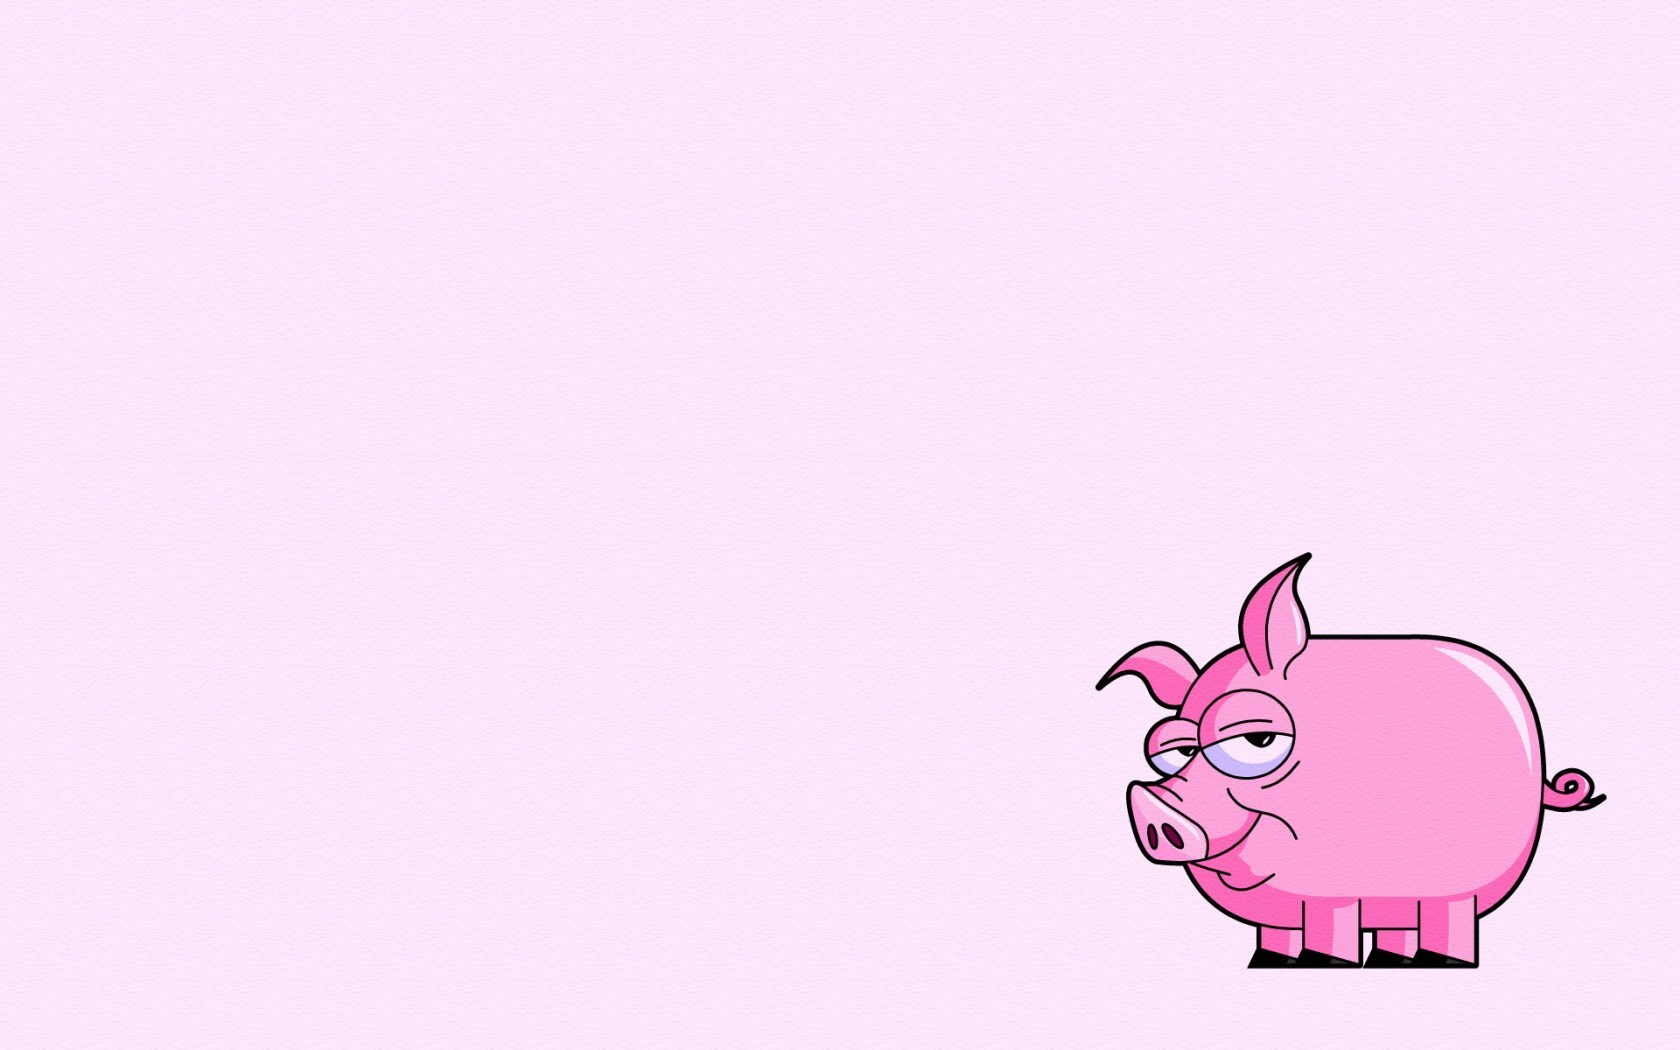 Pig Pink Minimalism Art Cartoon